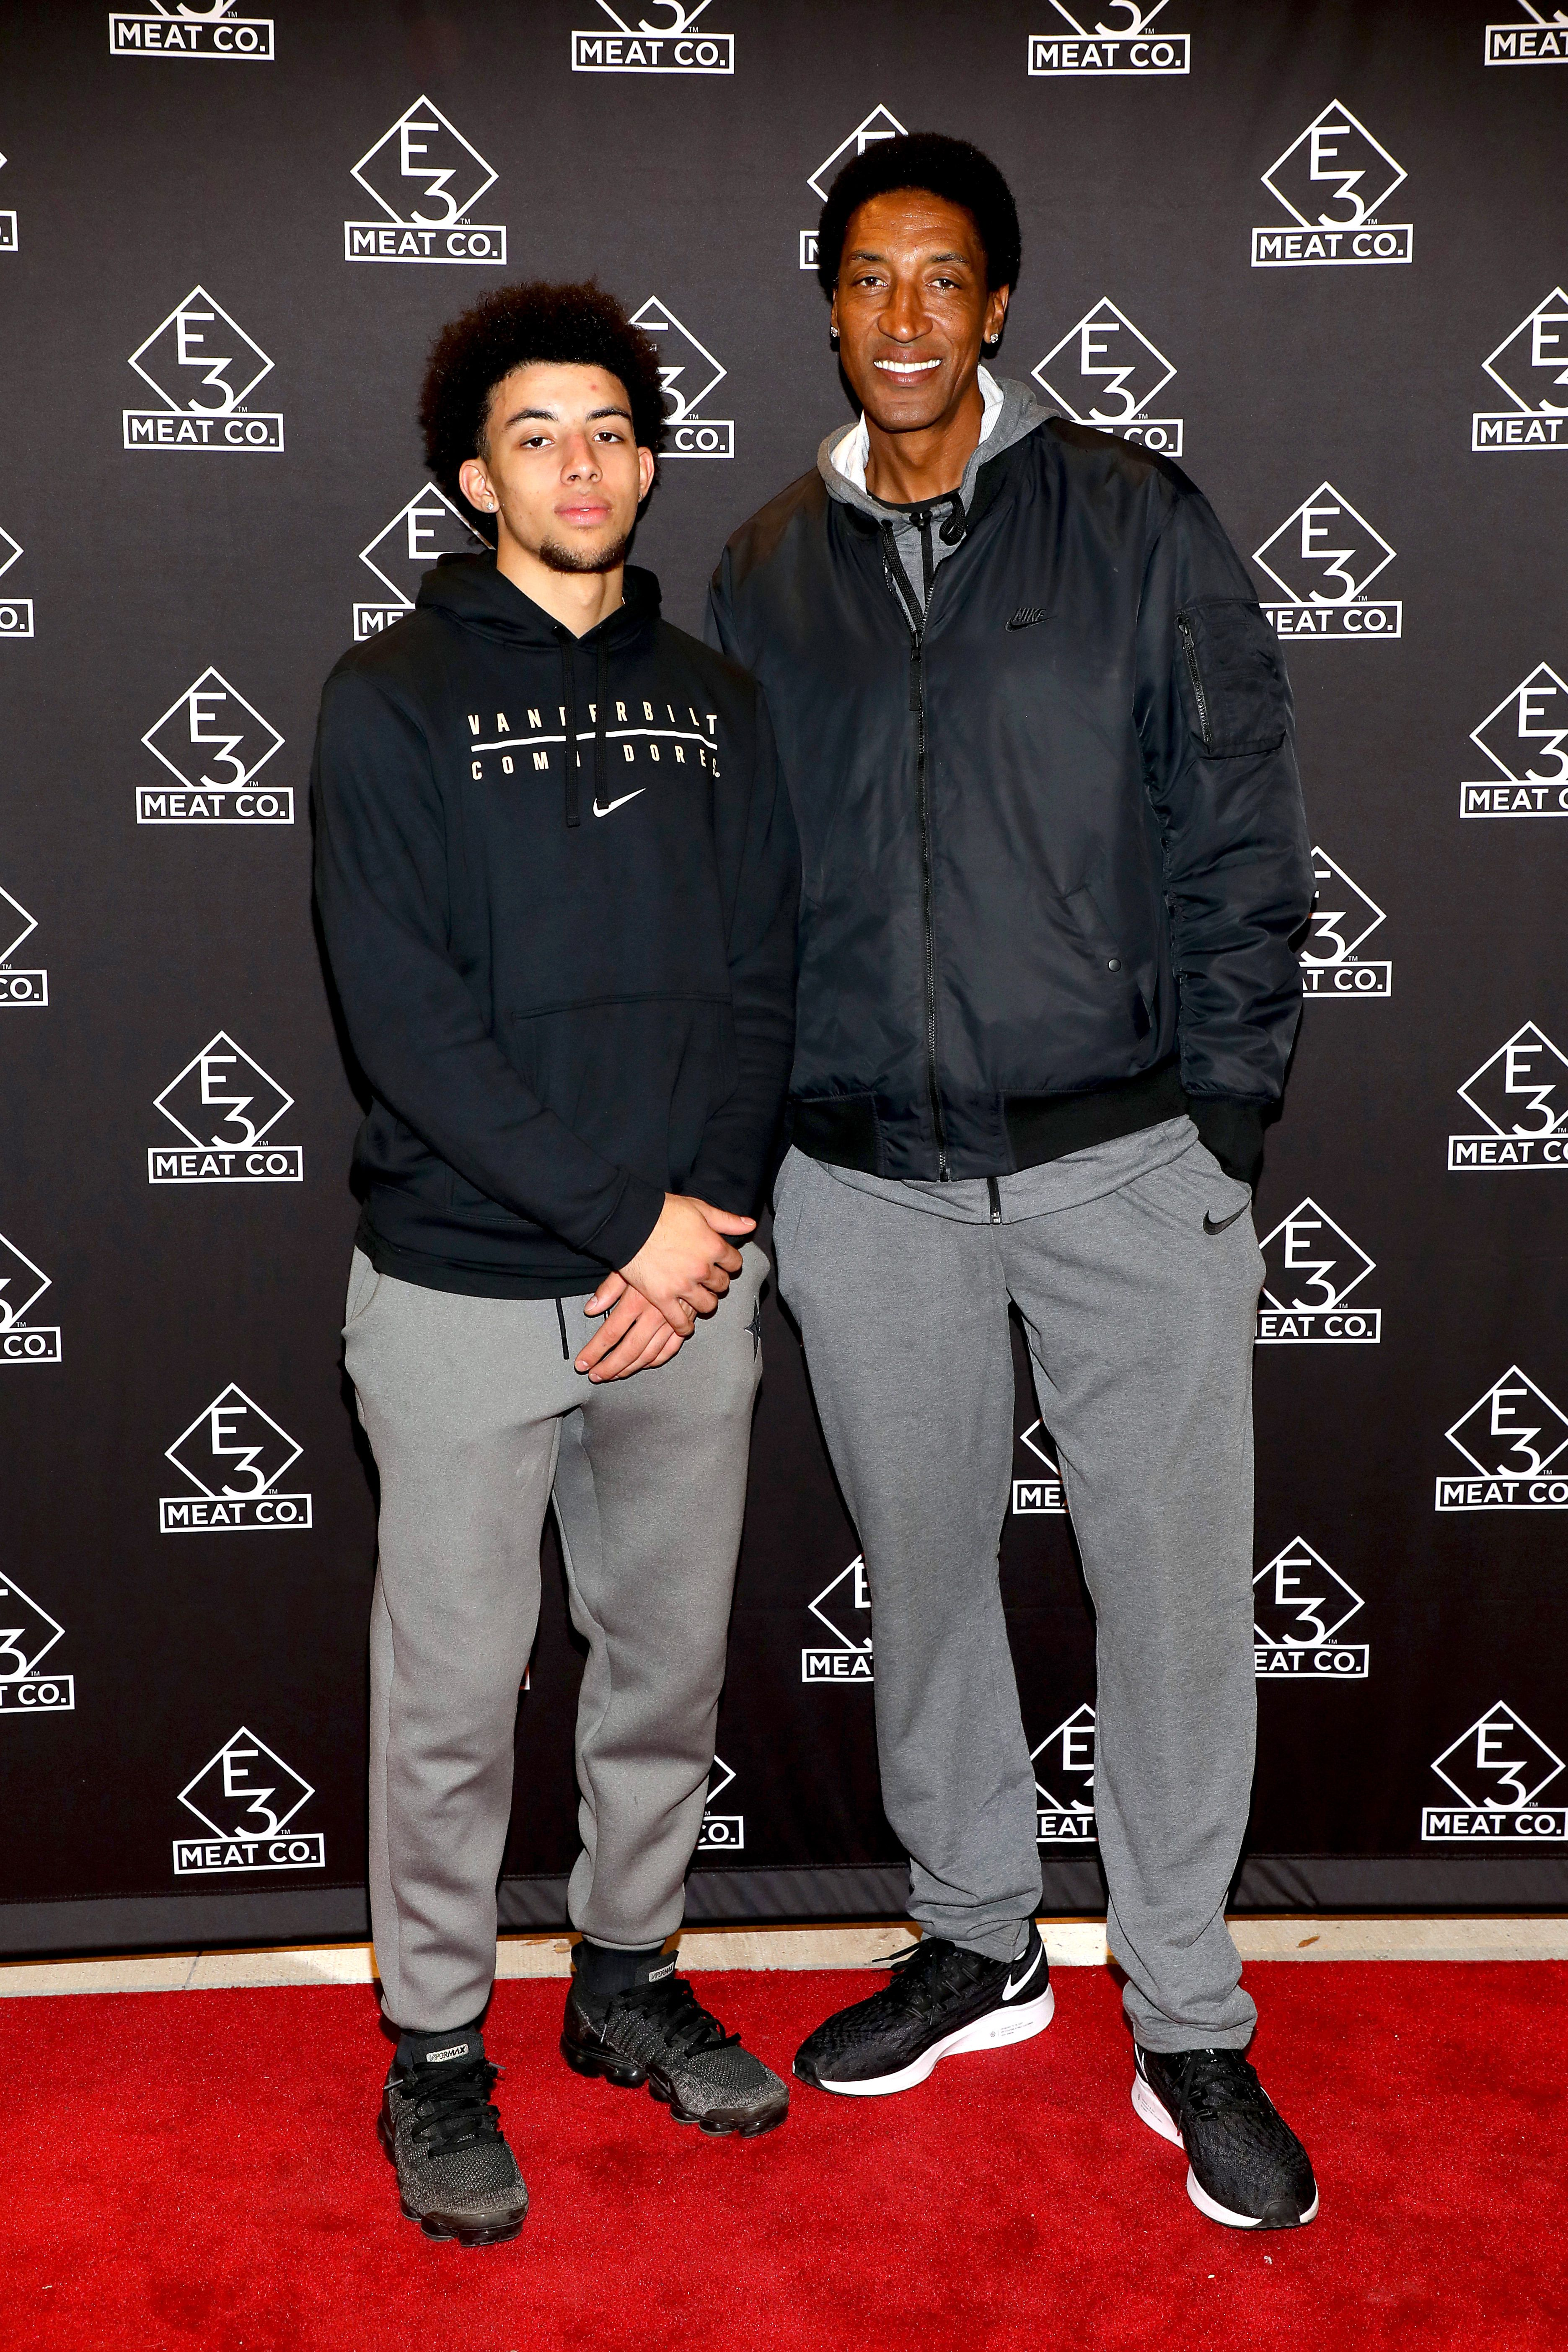 Who Is Scotty Pippen Jr Scottie Pippen S Son College Basketball Star